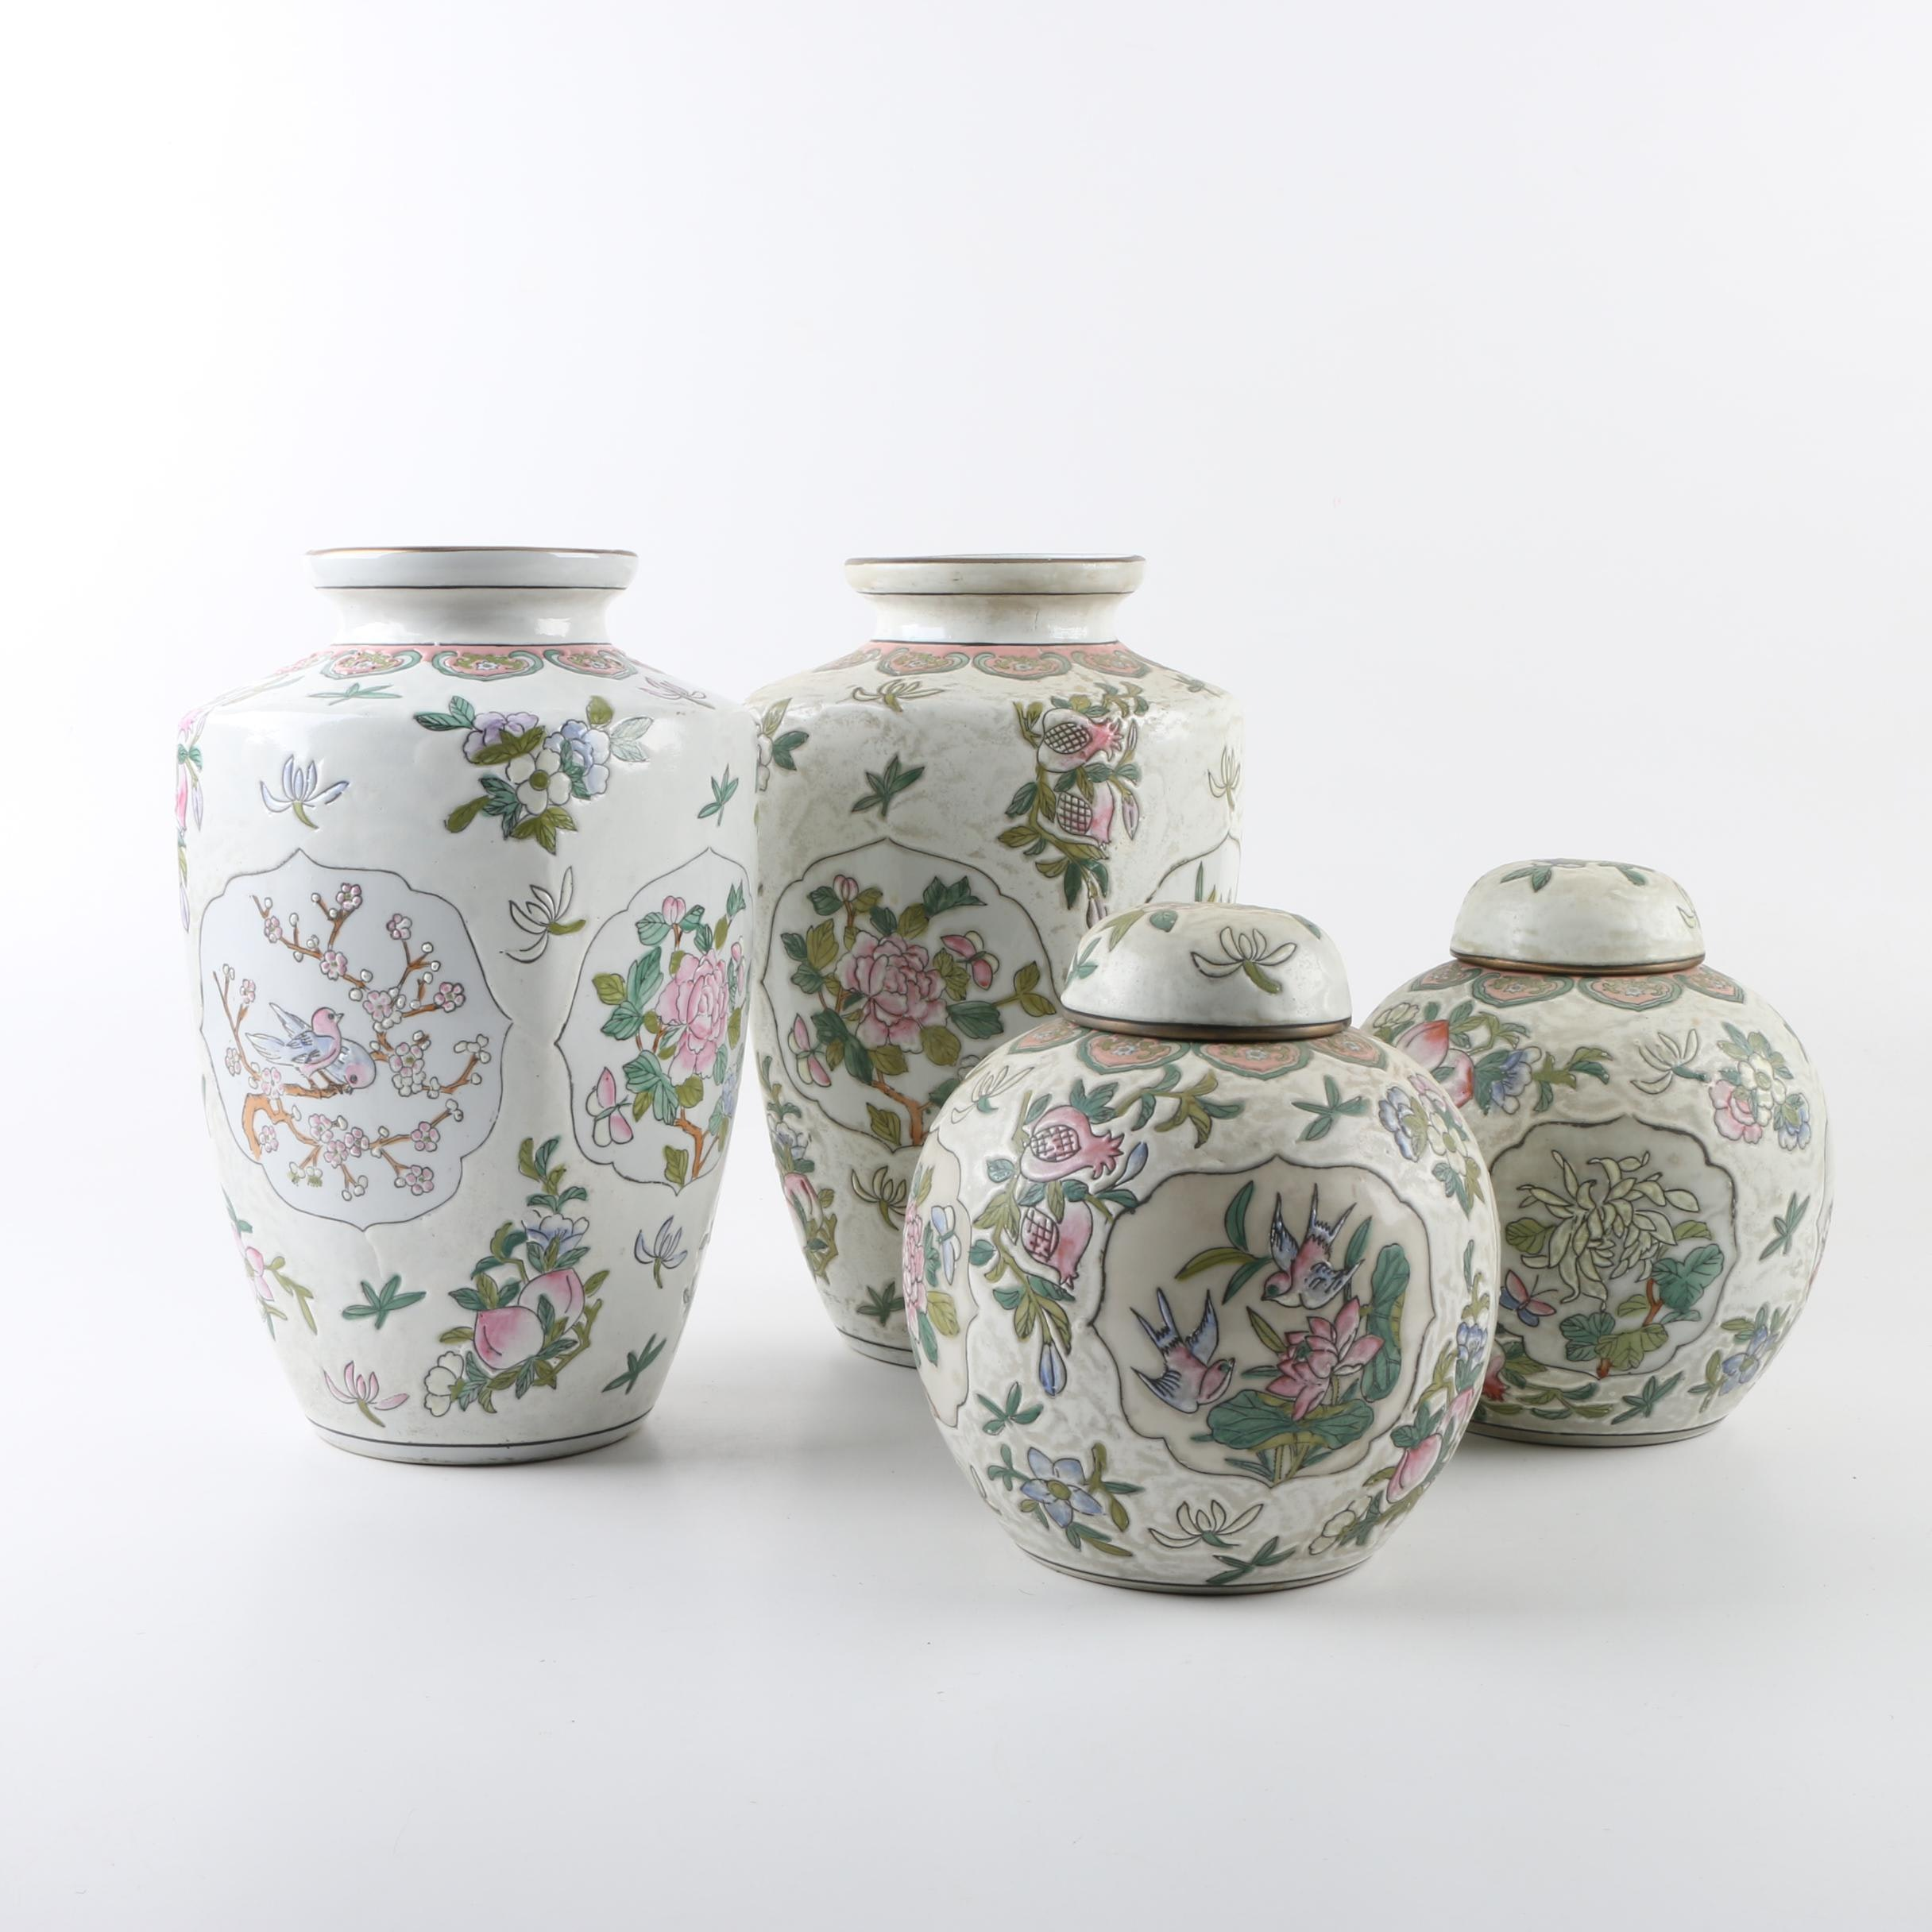 Chinese Hand-Painted Porcelain Vases and Ginger Jars